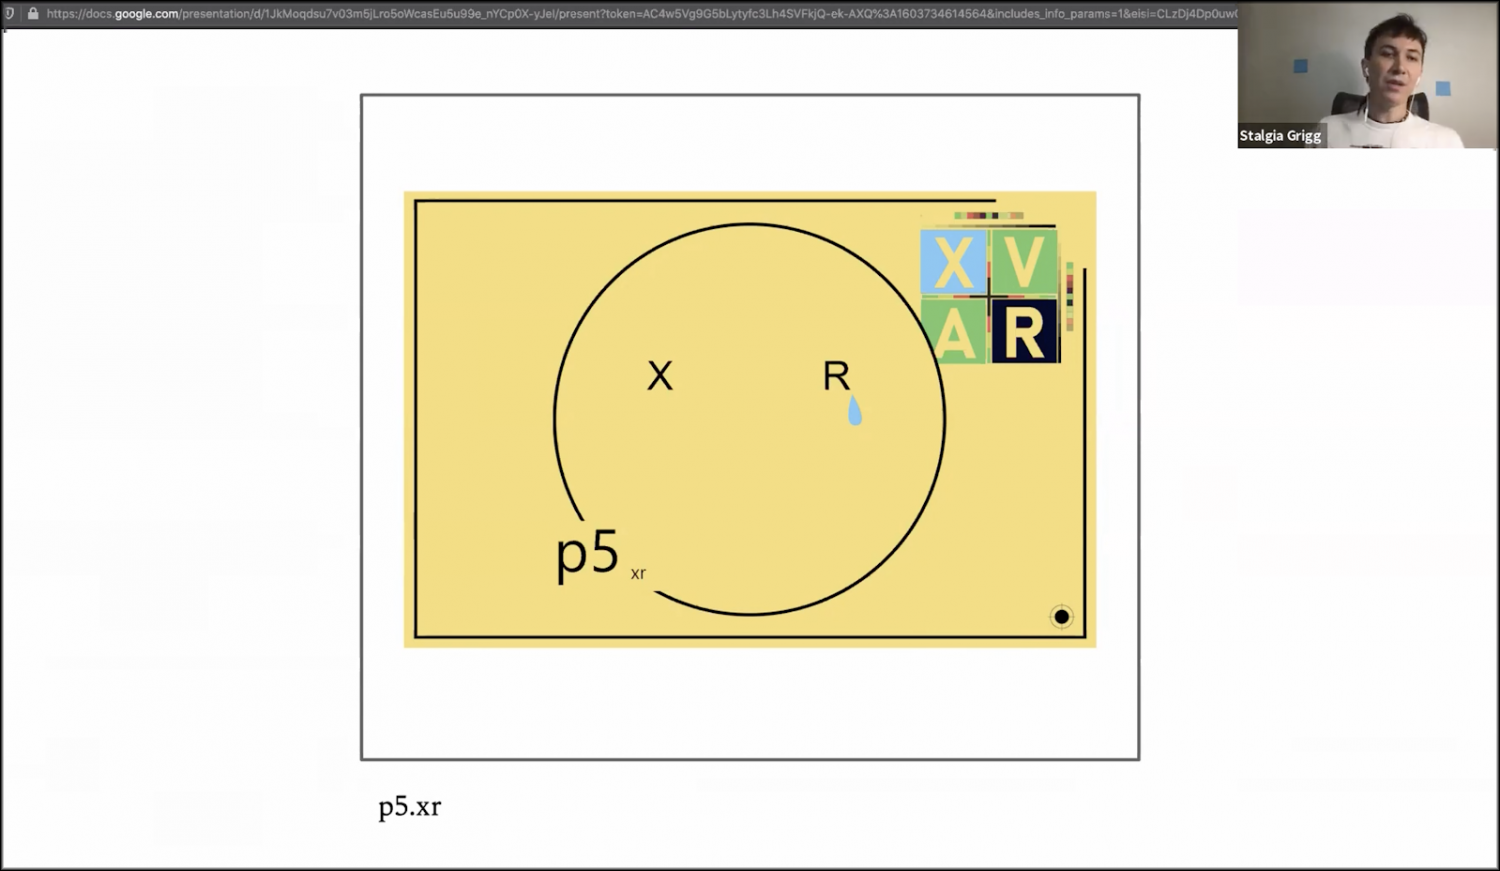 Slide with yellow p5.xr screen, X and R positioned like eyes in a circle with a tear dripping from the R